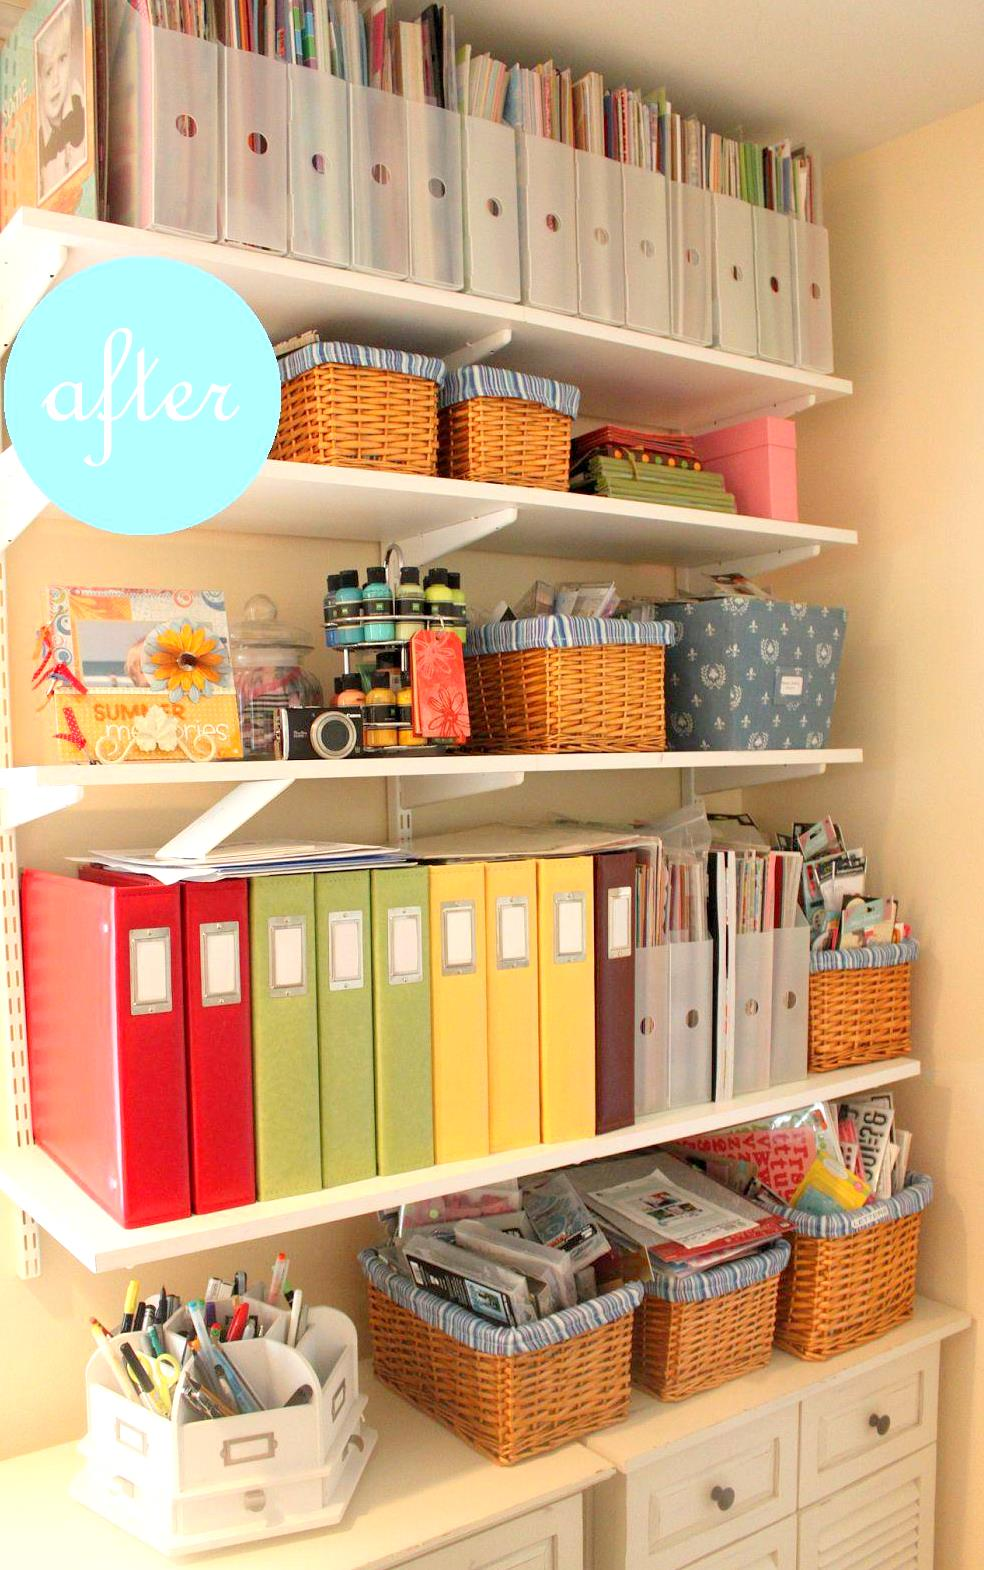 deliciously organized: Project: Office Organization